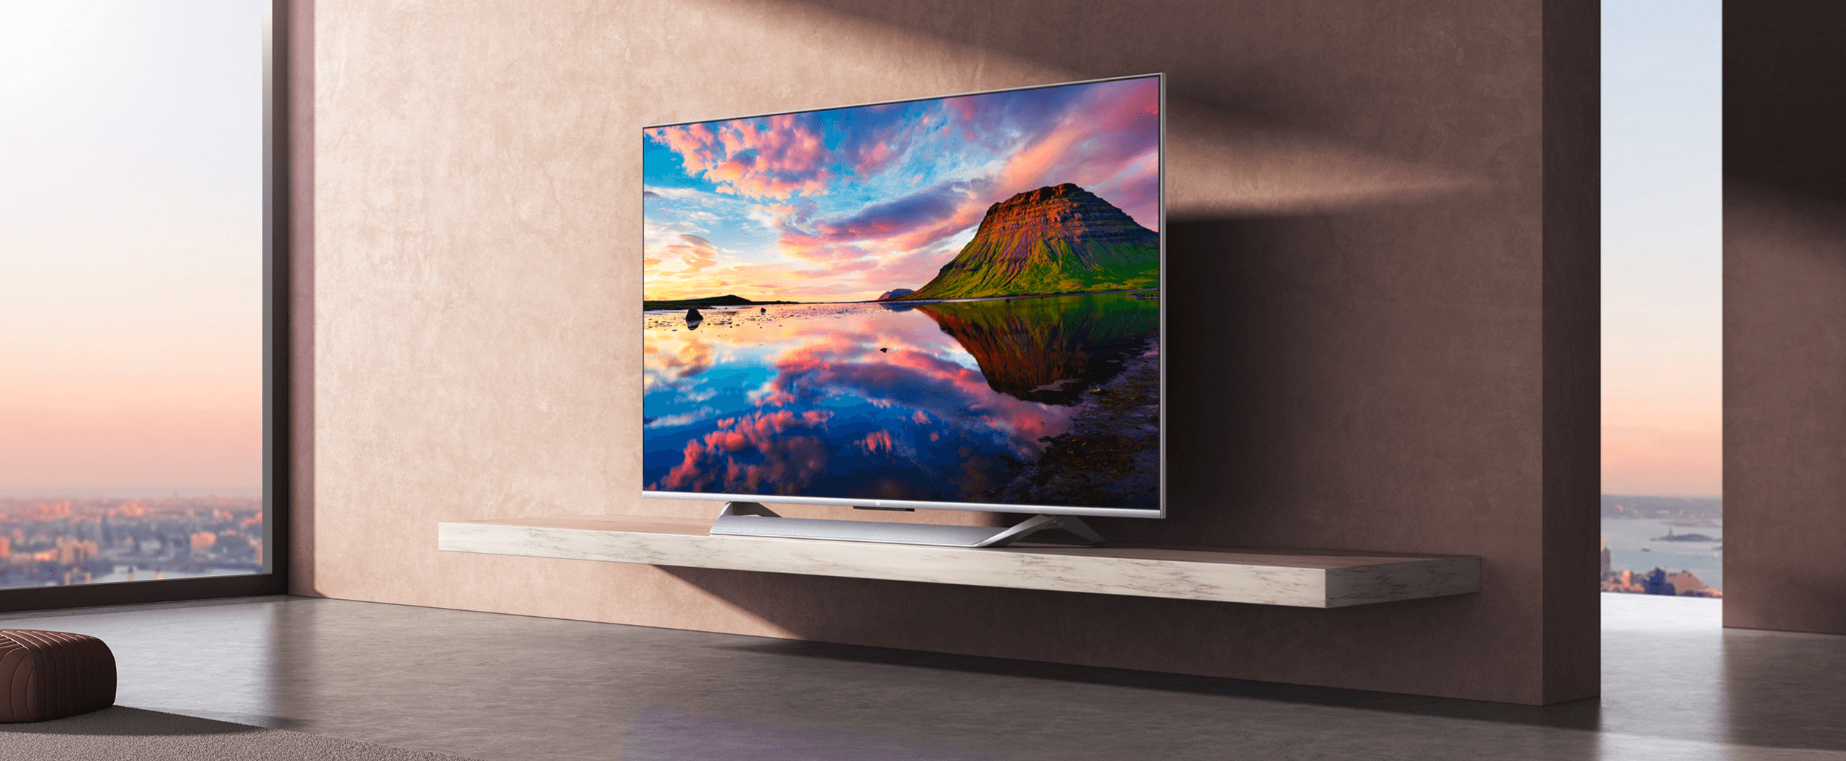 Mi QLED TV 75 Ultra-HD Smart Android TV – Pricing And When Will It Be Available?